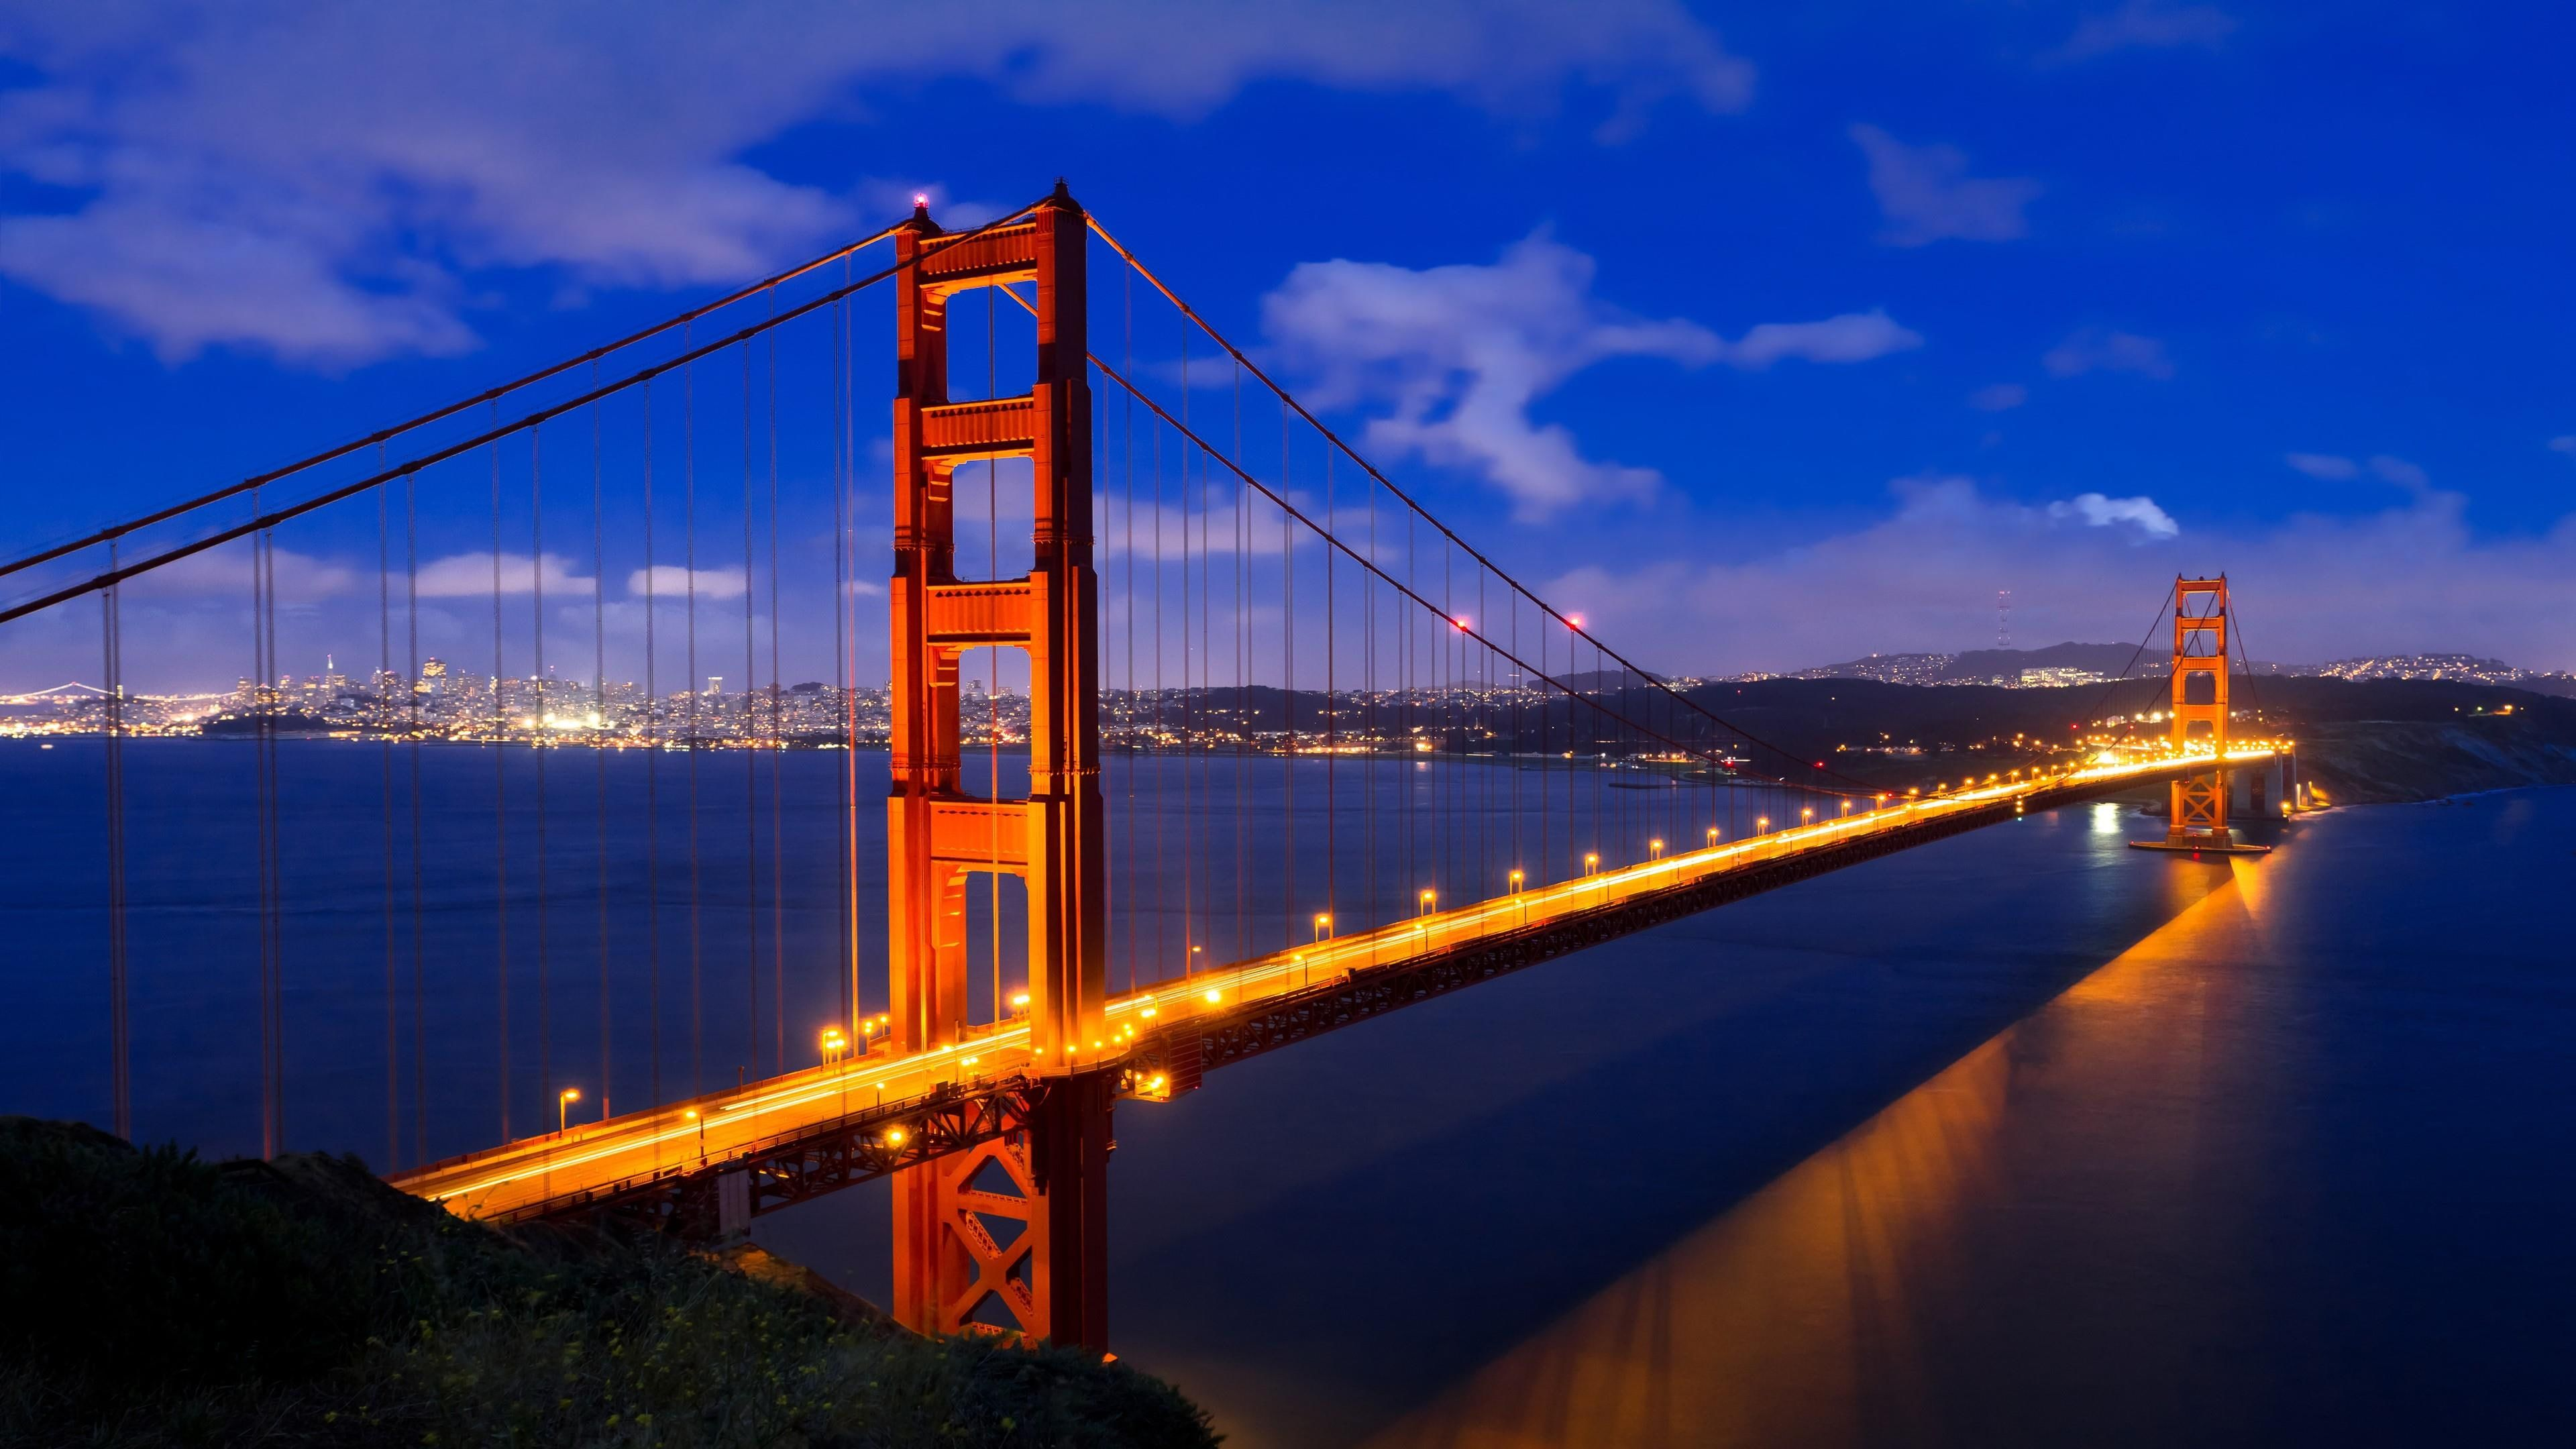 Golden Gate Big Bridge Night Lights Lake United States Usa San Francisco California Golden Gate Bridge Wallpaper Bridge Wallpaper Golden Gate Bridge